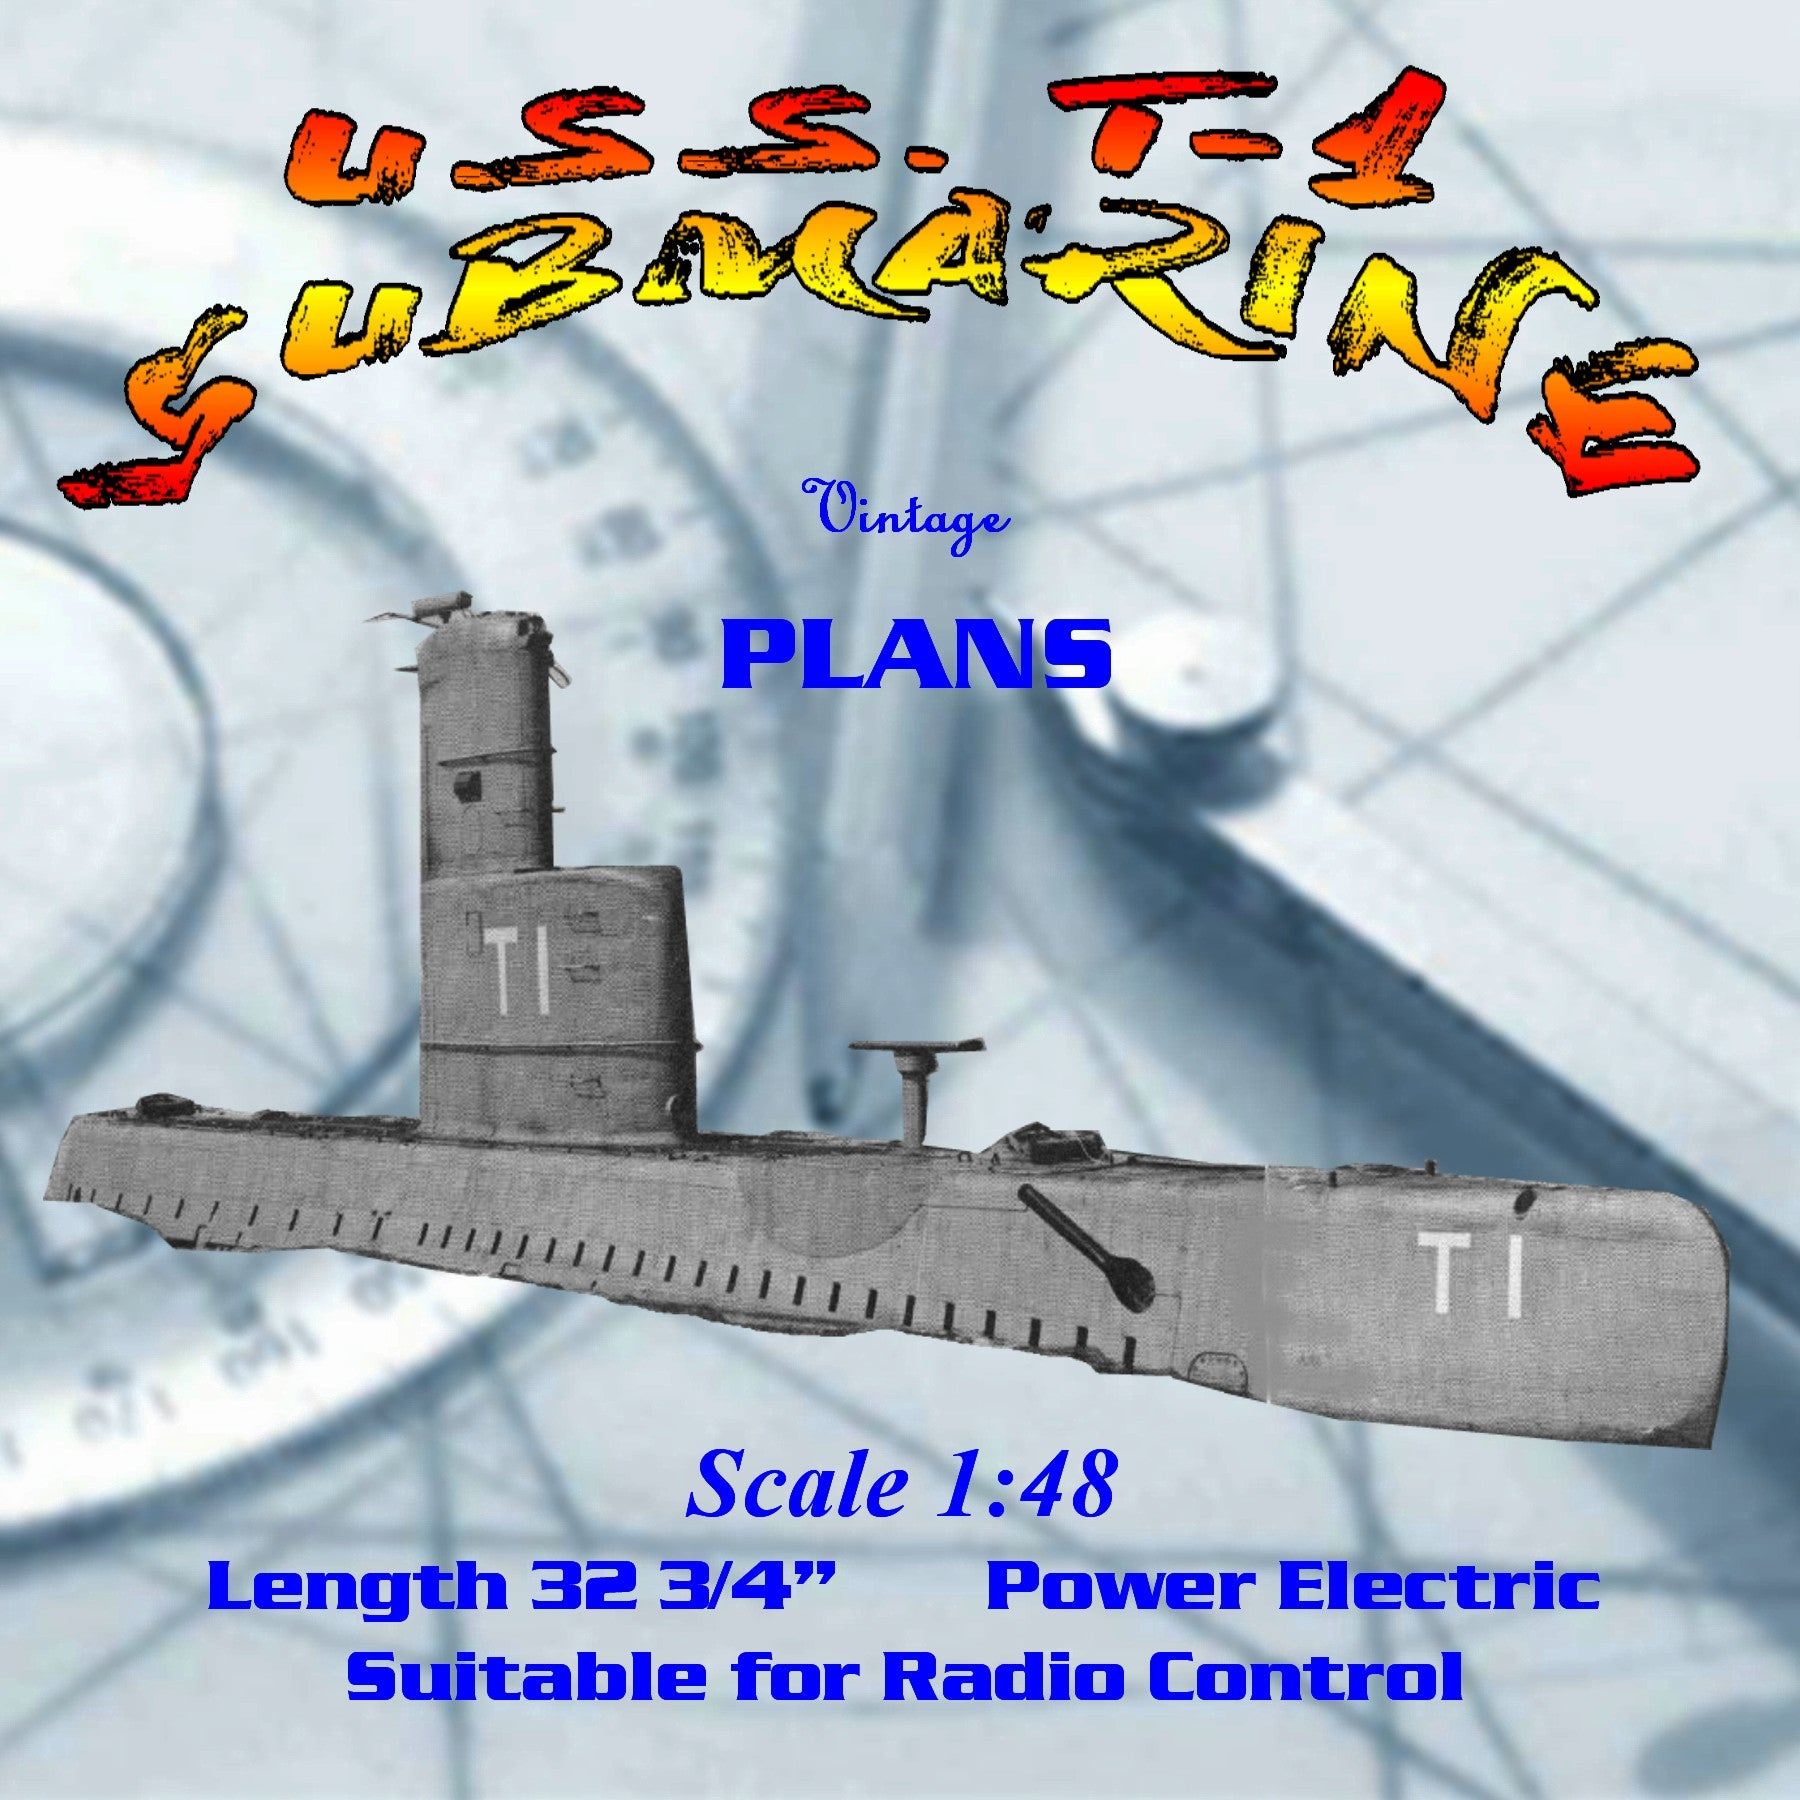 Full Size Printed Plan Scale 1:48  U.S.S. T-1  Diving SUBMARINE Suitable for Radio Control